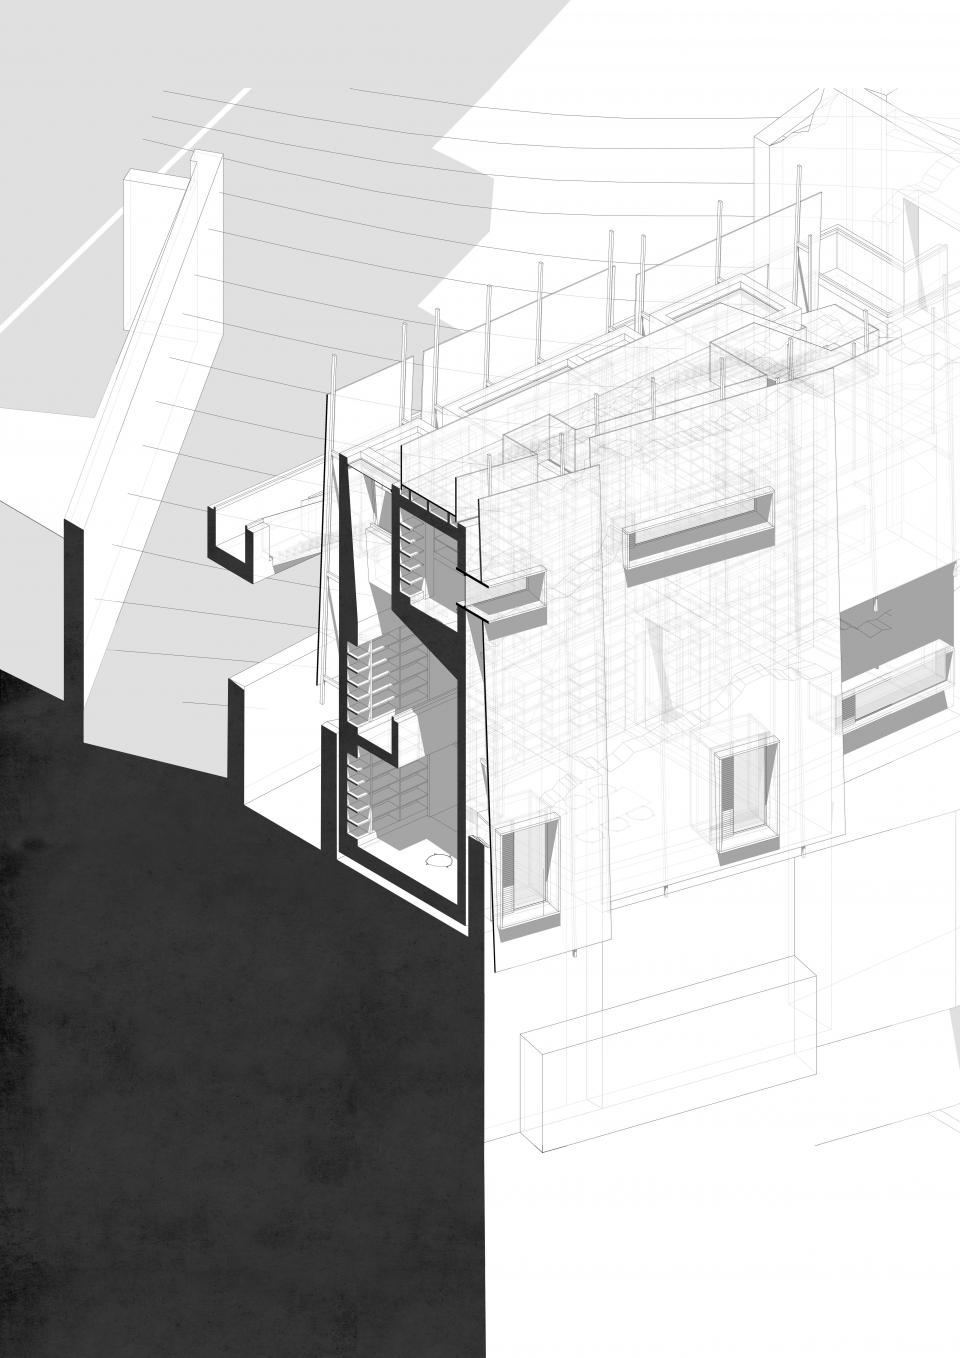 Alexander Ronse_Architecture - MArch_2020_[Ex]Posing Ground - Archiving _ Unearthing Pallonetto_6.jpg